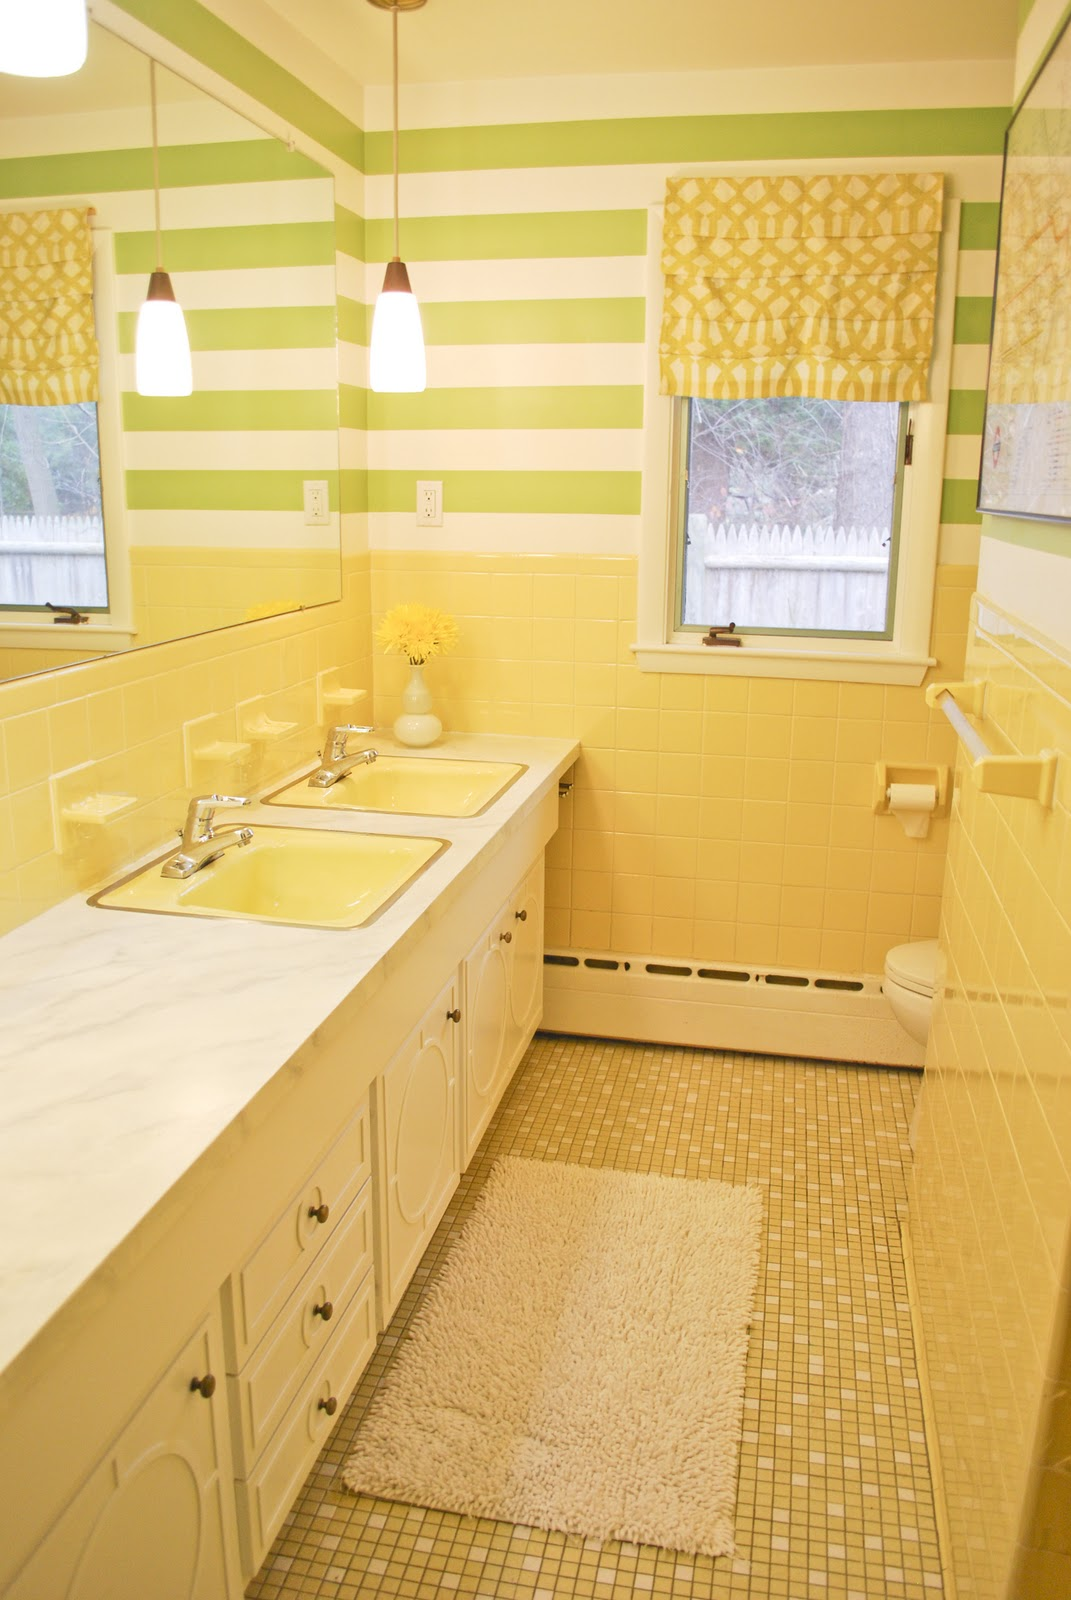 GORGEOUS SHINY THINGS Bathroom On The Cheap Lipstick On A Pig - 1960 bathroom remodel